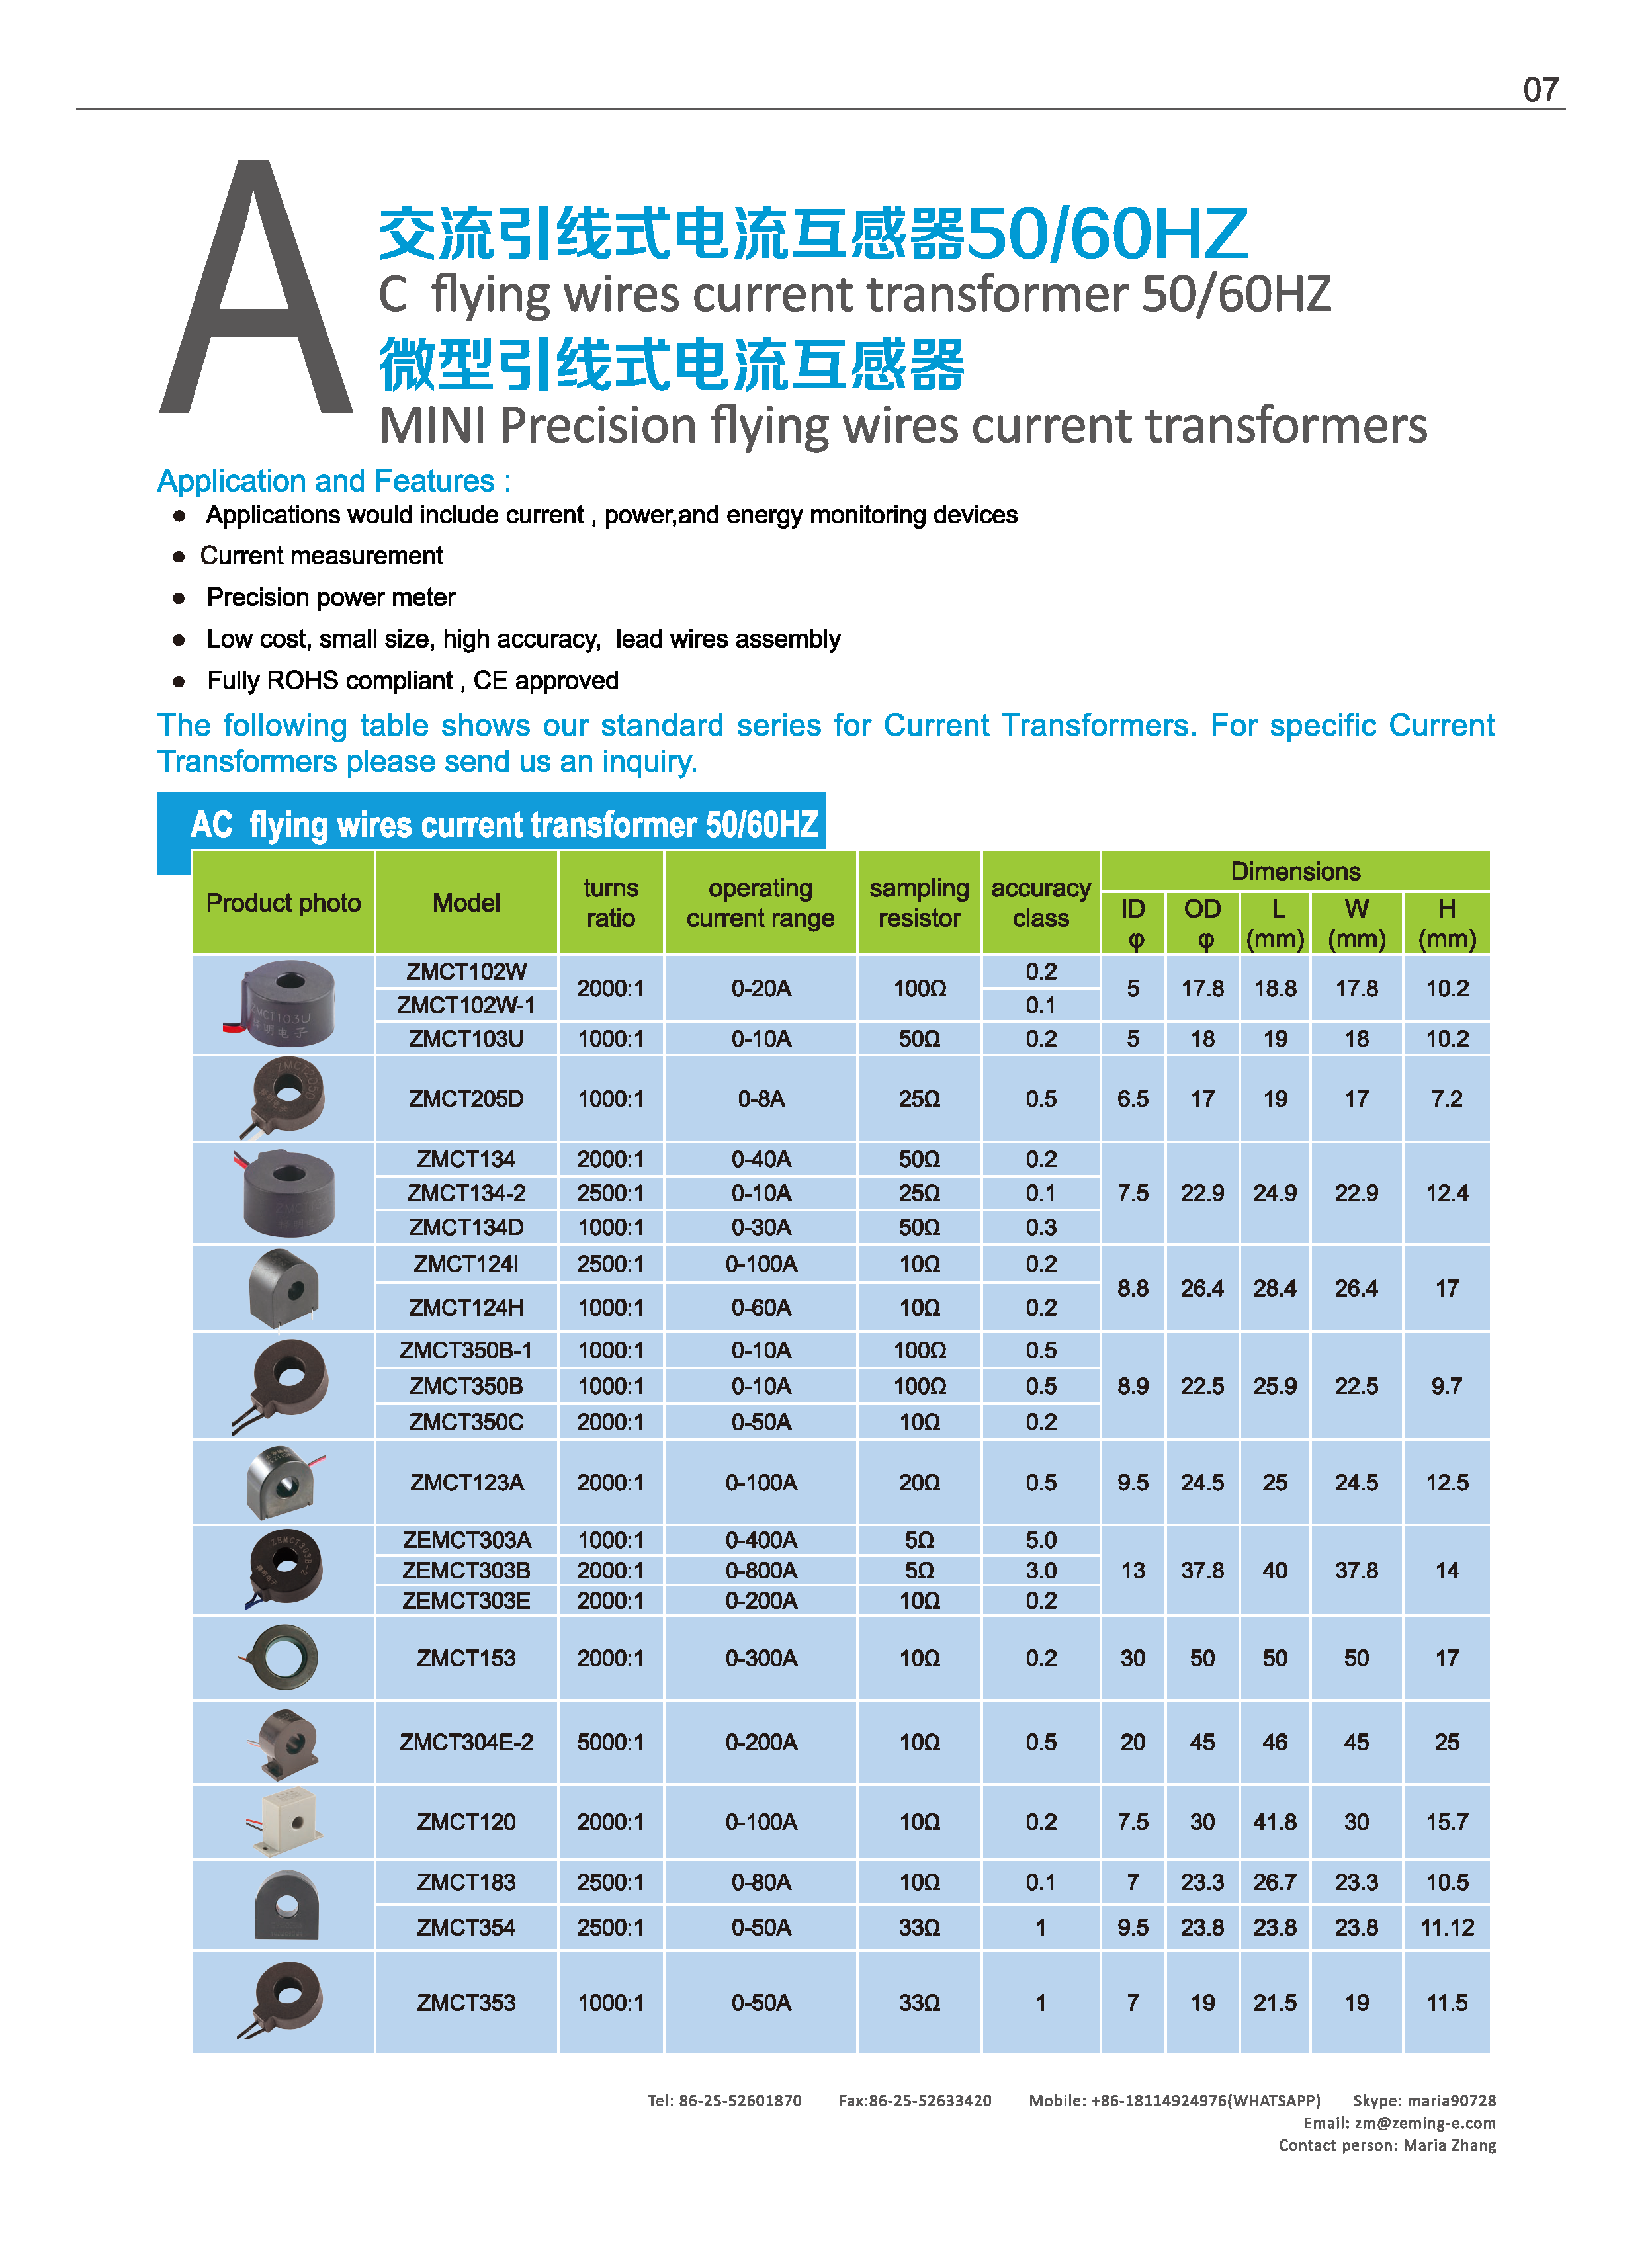 flying wires current transformer